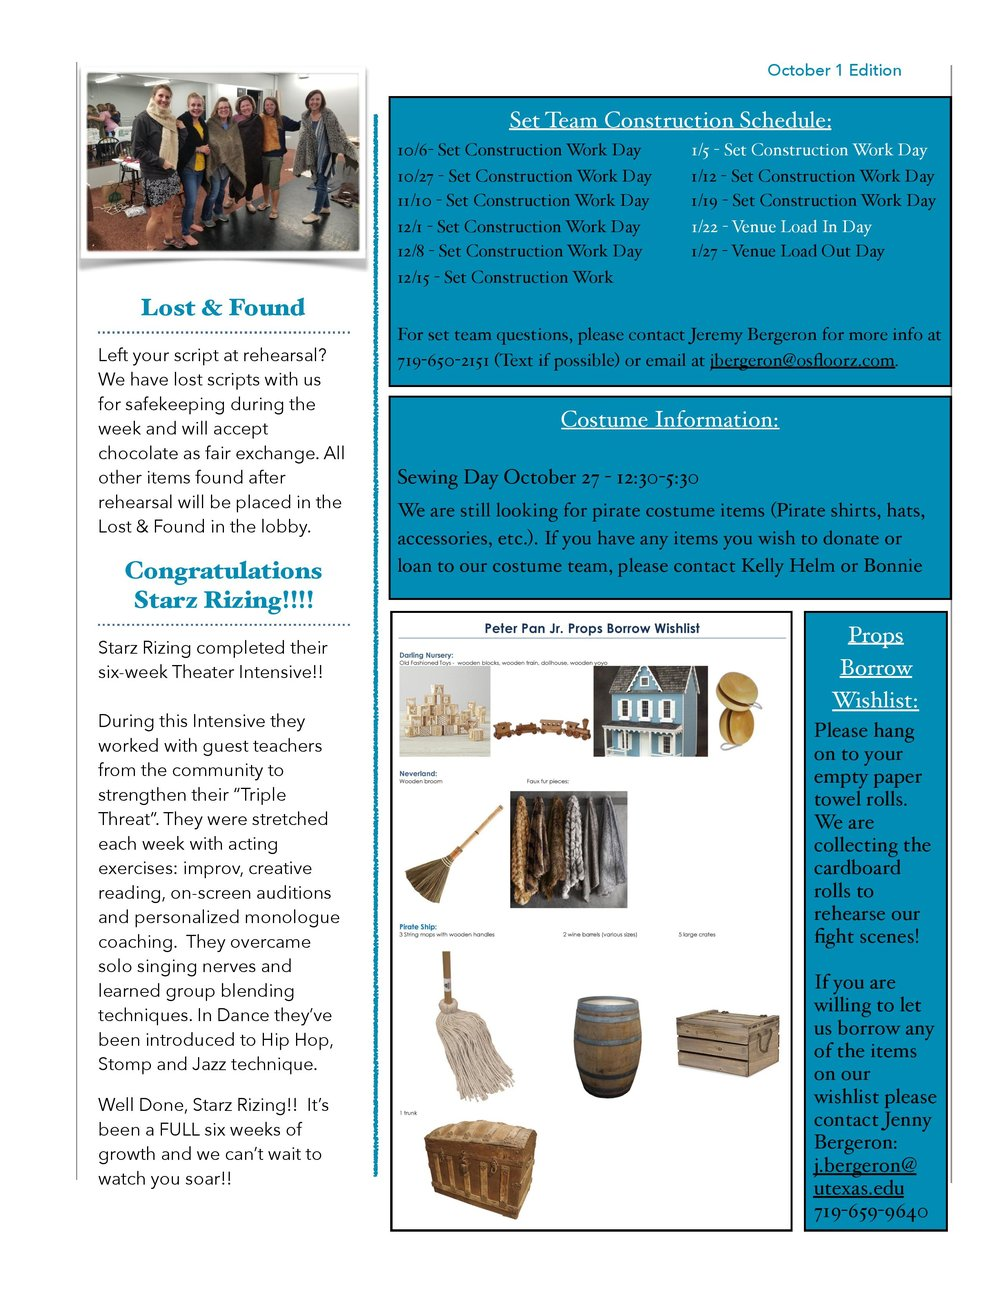 STC Newsletter copy 10_01-page-002.jpg